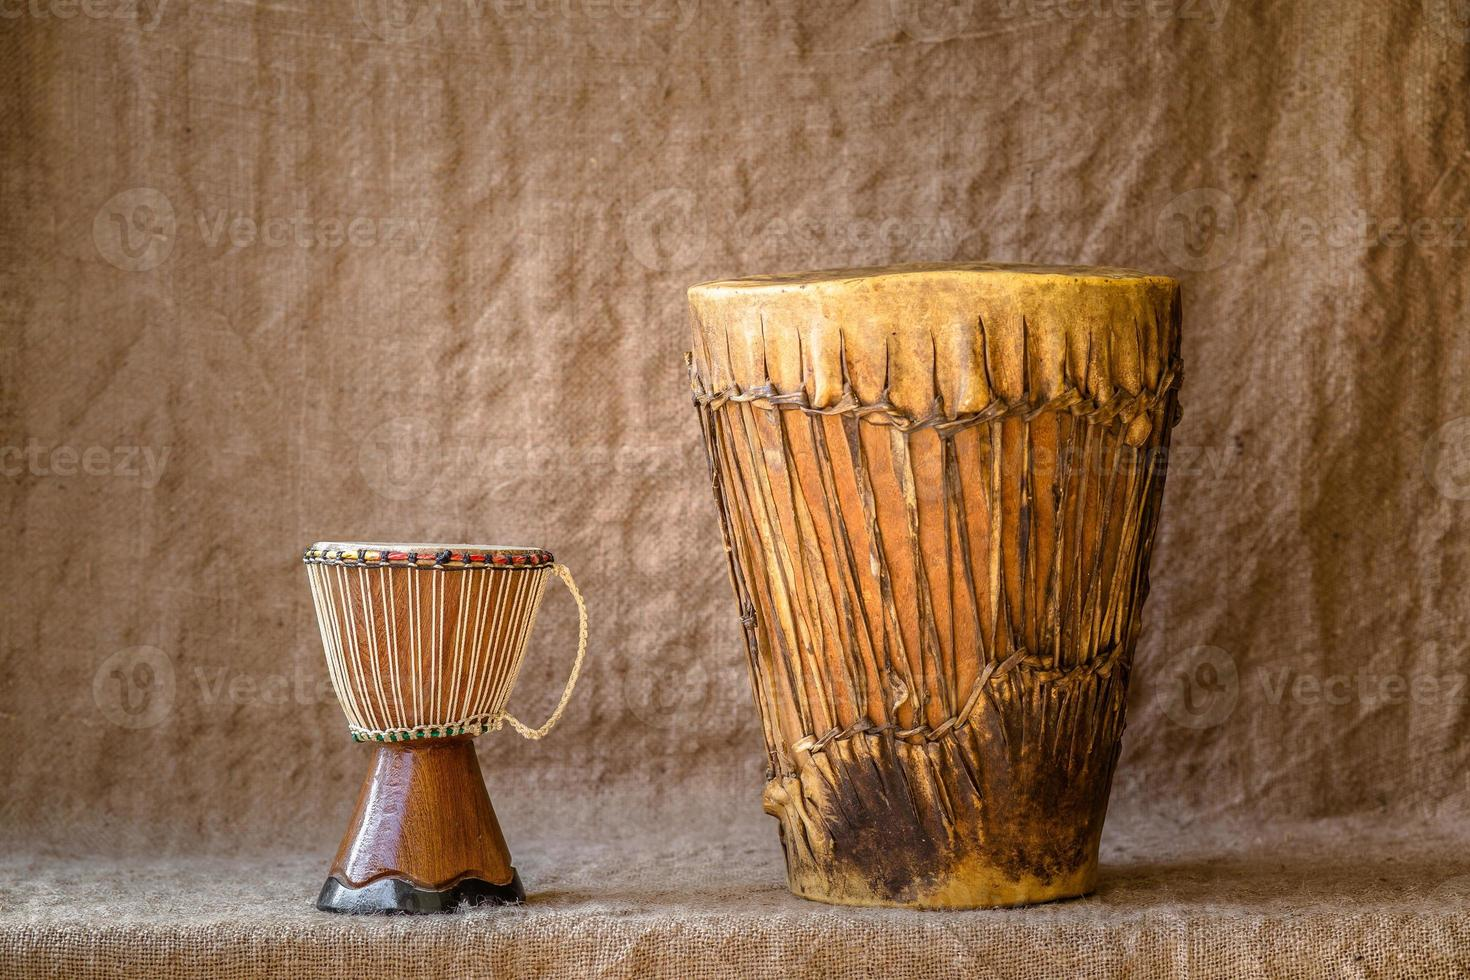 Wood percussions instruments photo